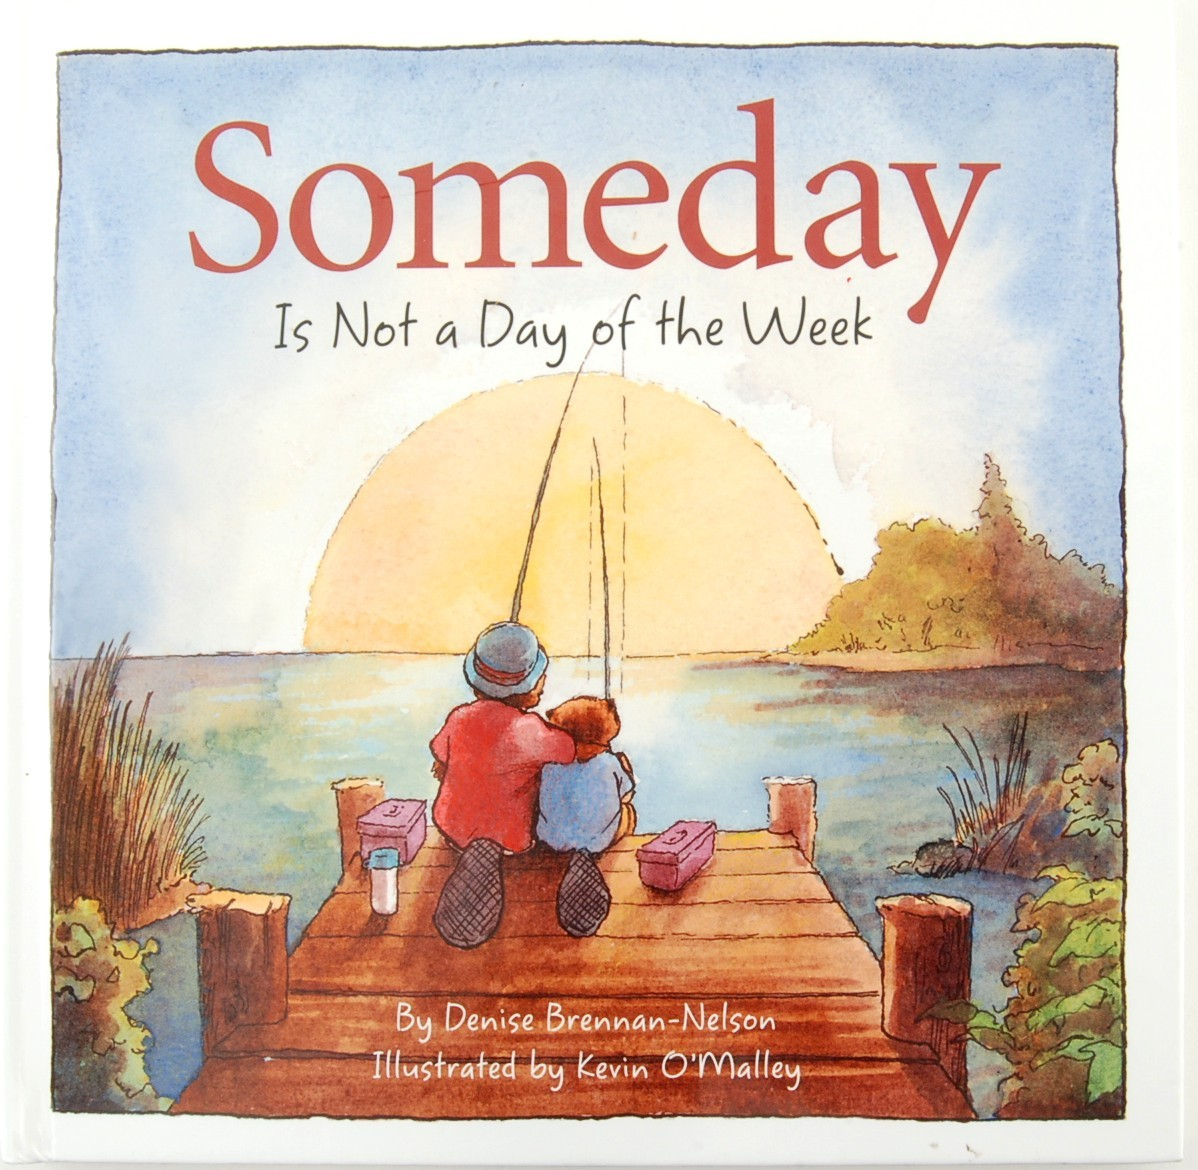 Book someday